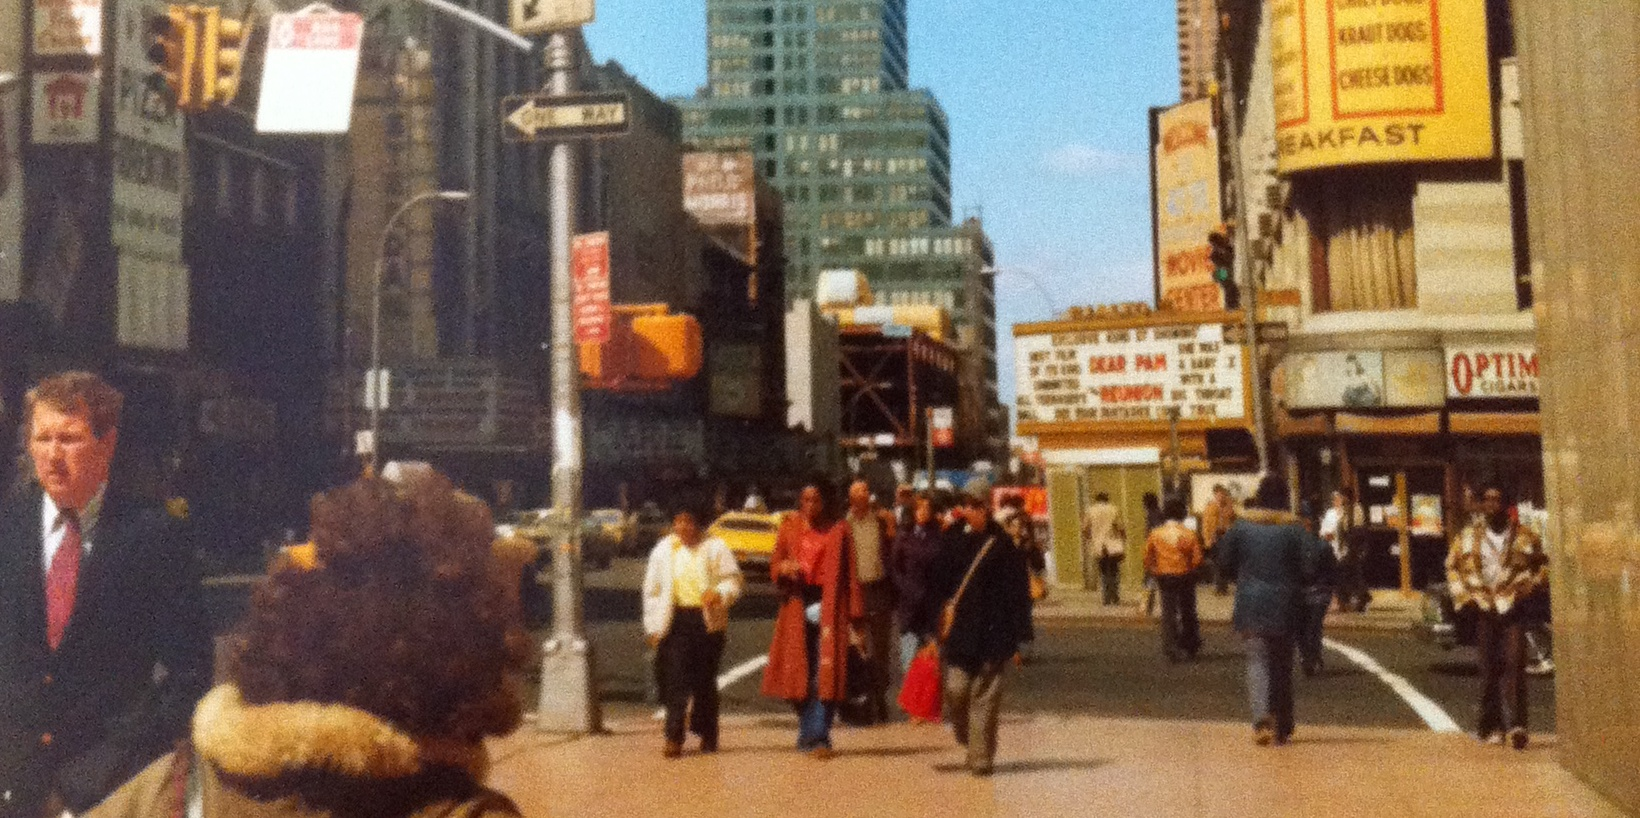 Great Gritty 80's New York City Pictures